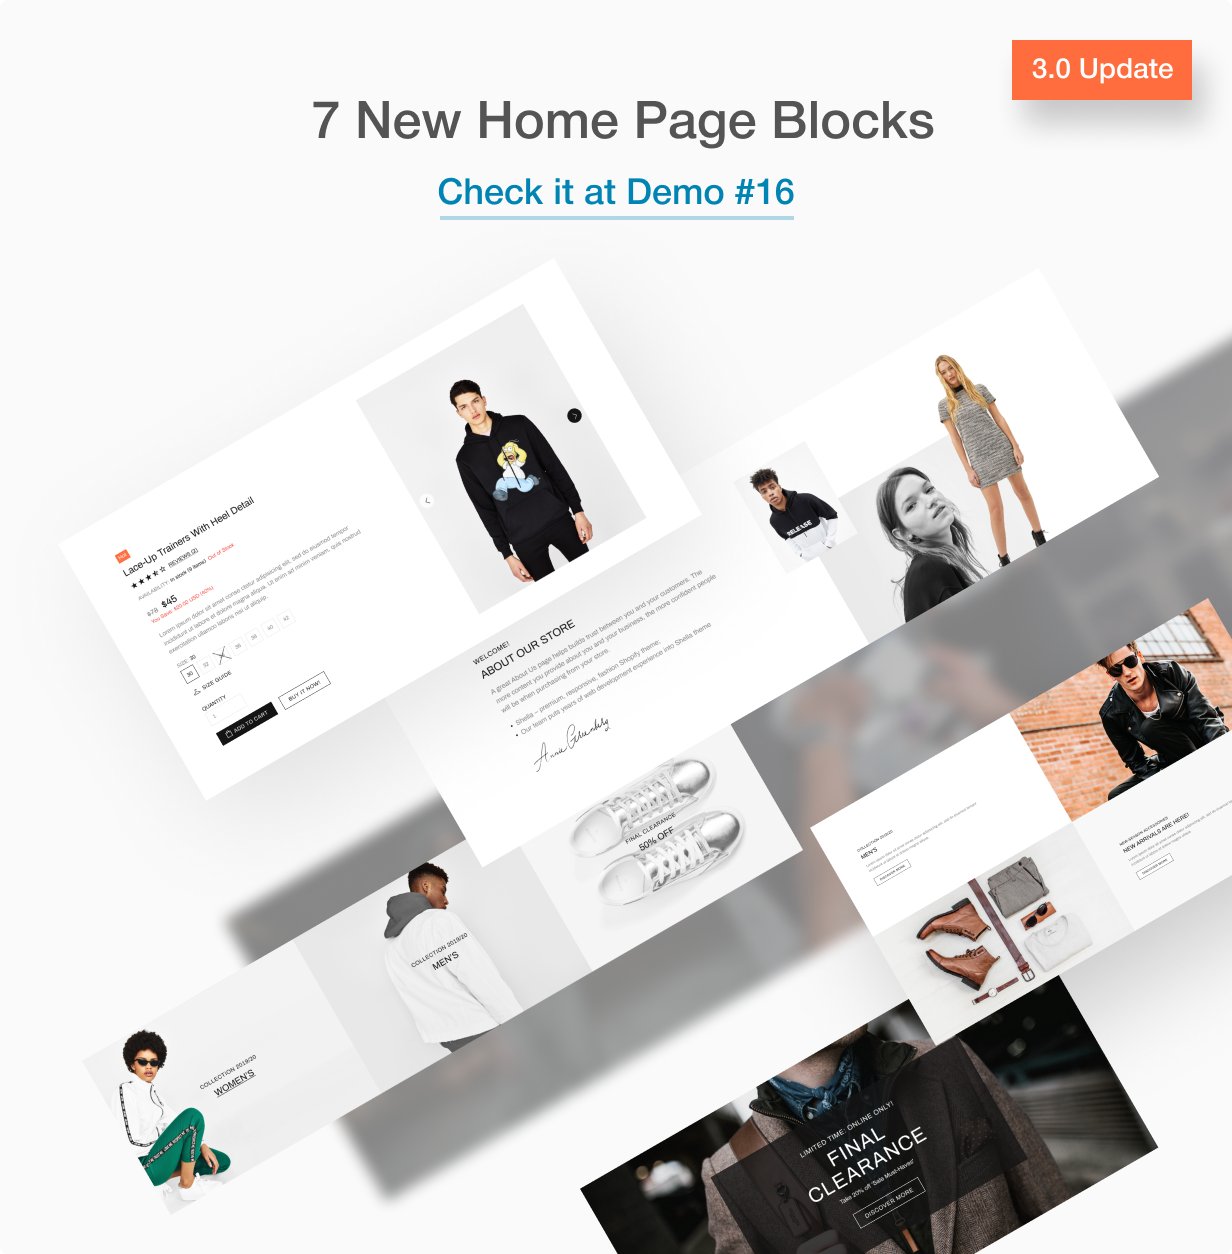 New blocks on home page